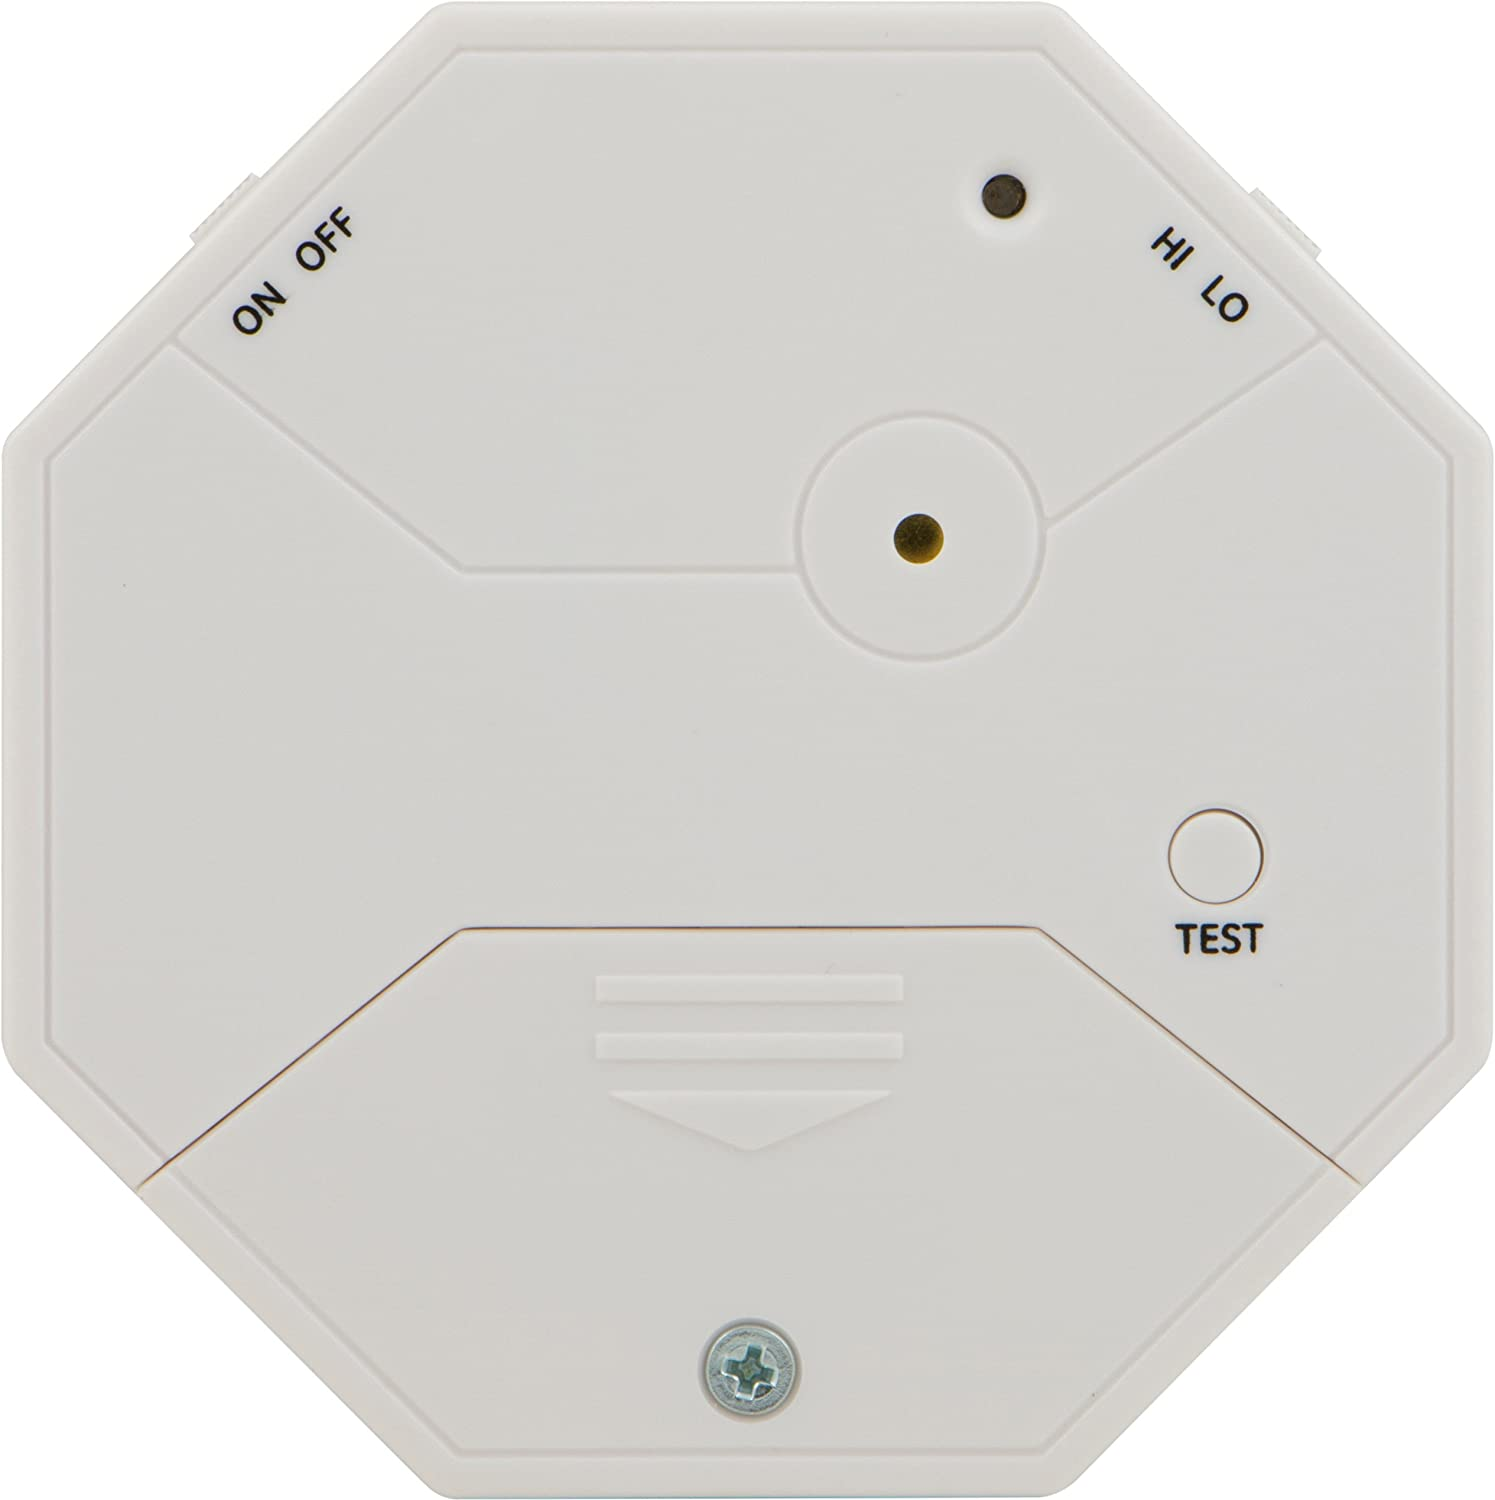 GE Personal Security Glass Vibration Alarm, Detects Vibration or Broken Glass, Easy to Use, Easy to Install, 45413